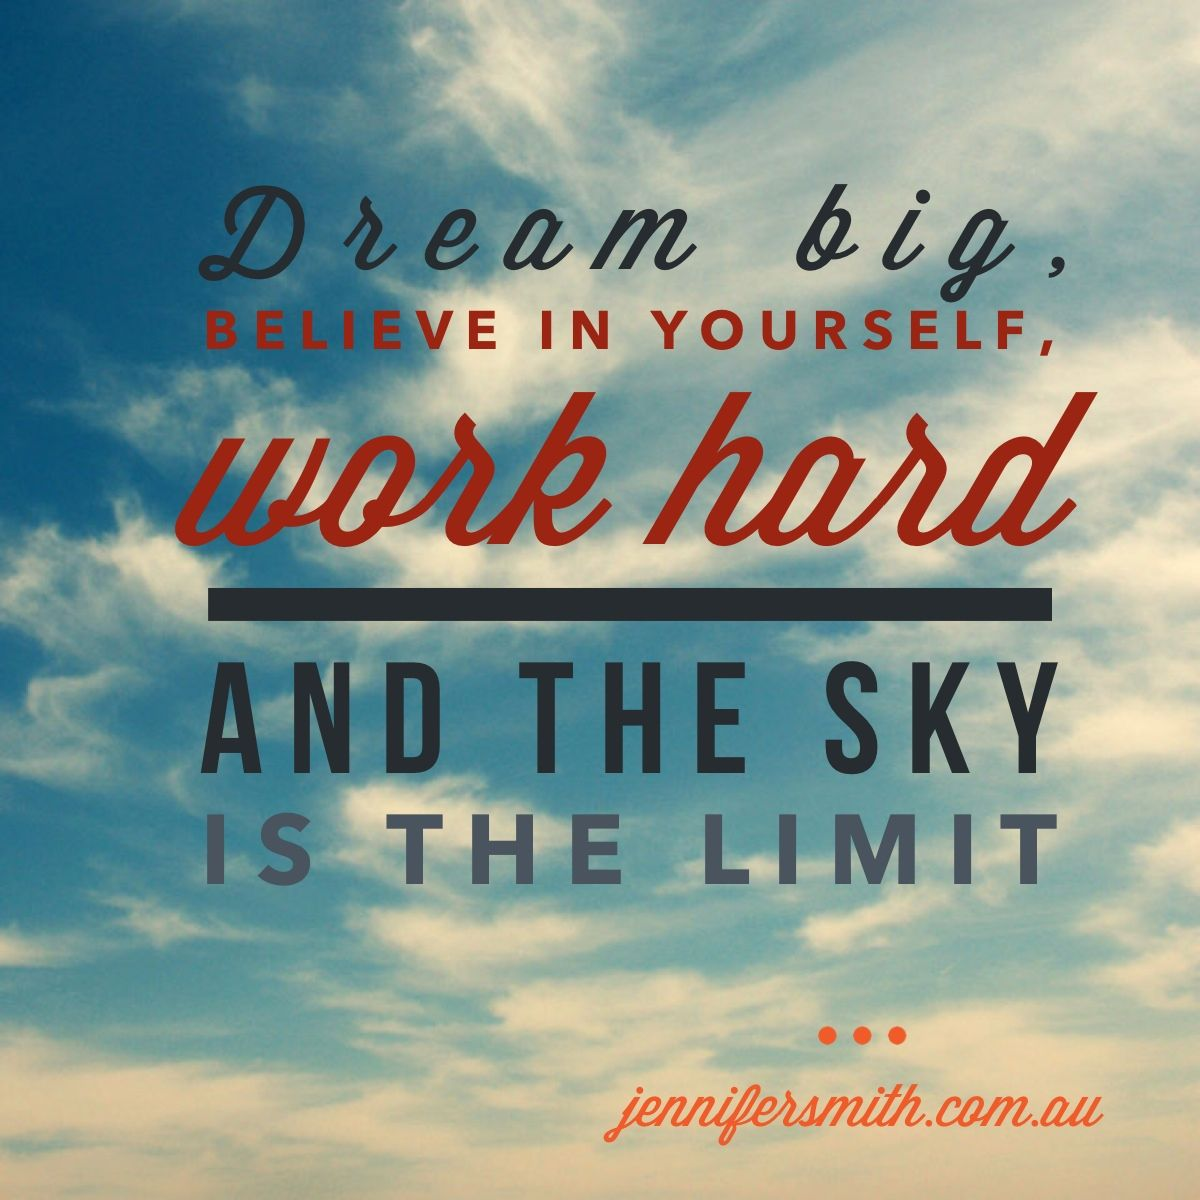 Quotes About Hard Work And Dreams: Dream Big, Believe In Yourself, Work Hard And The Sky Is